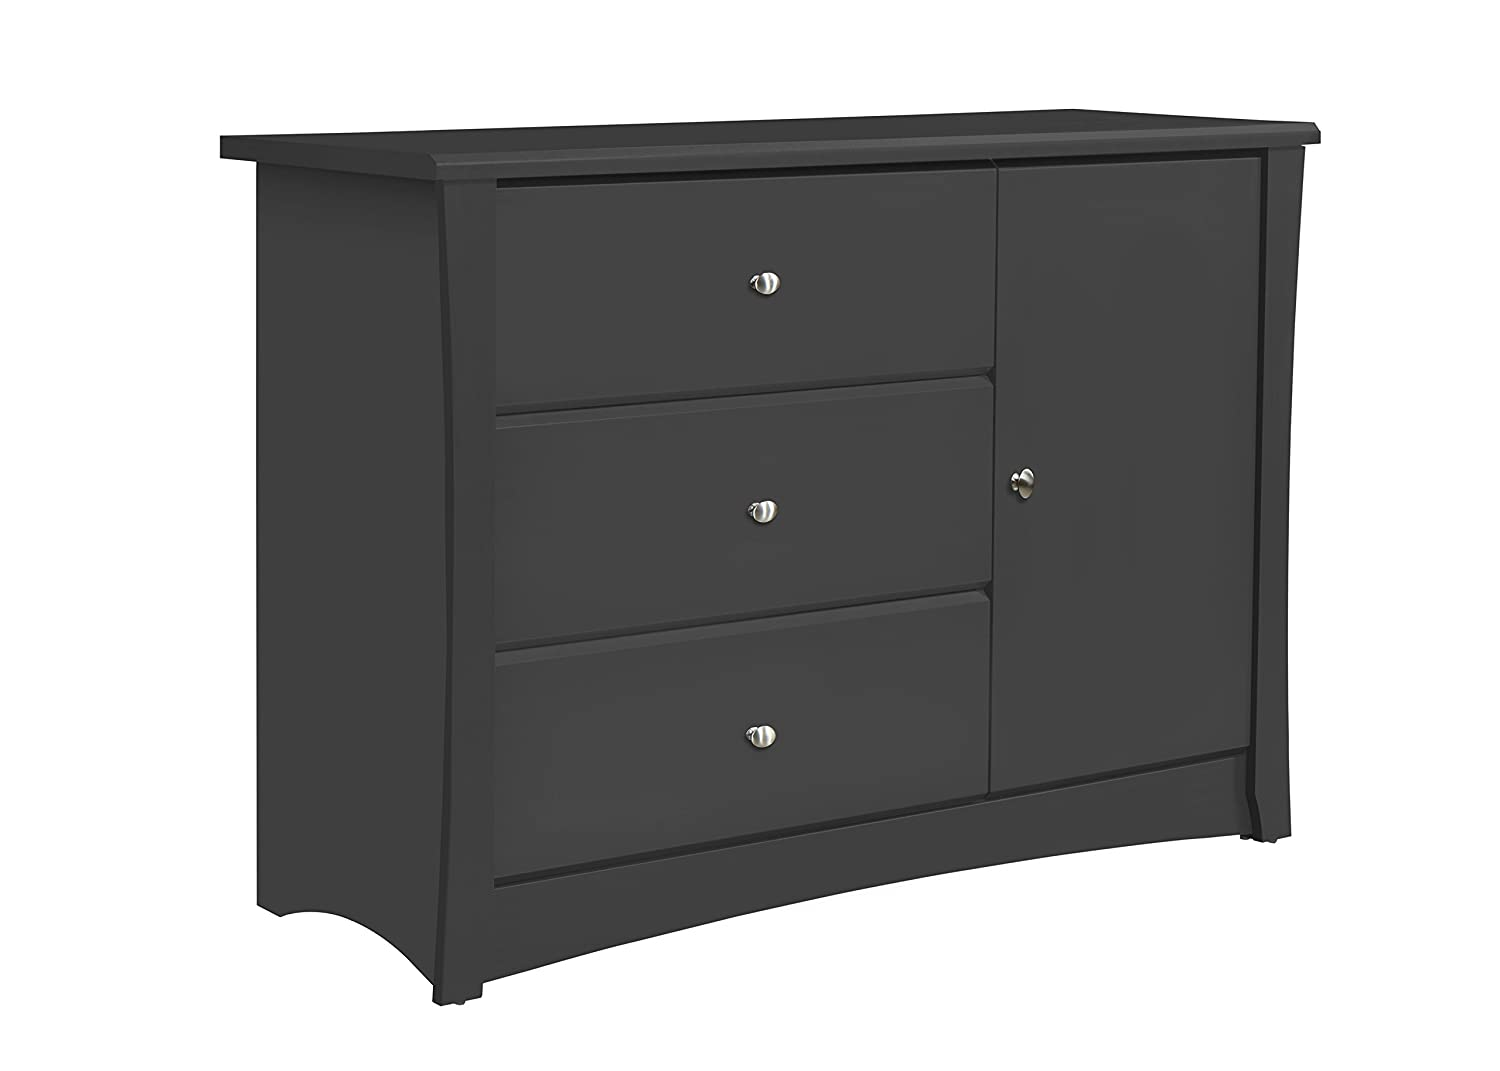 Storkcraft Crescent 4 Drawer Chest, Grey Kids Bedroom Dresser with 4 Drawers, Wood & Composite Construction, Ideal for Nursery, Toddlers Room, Kids Room Stork Craft 03664-30G